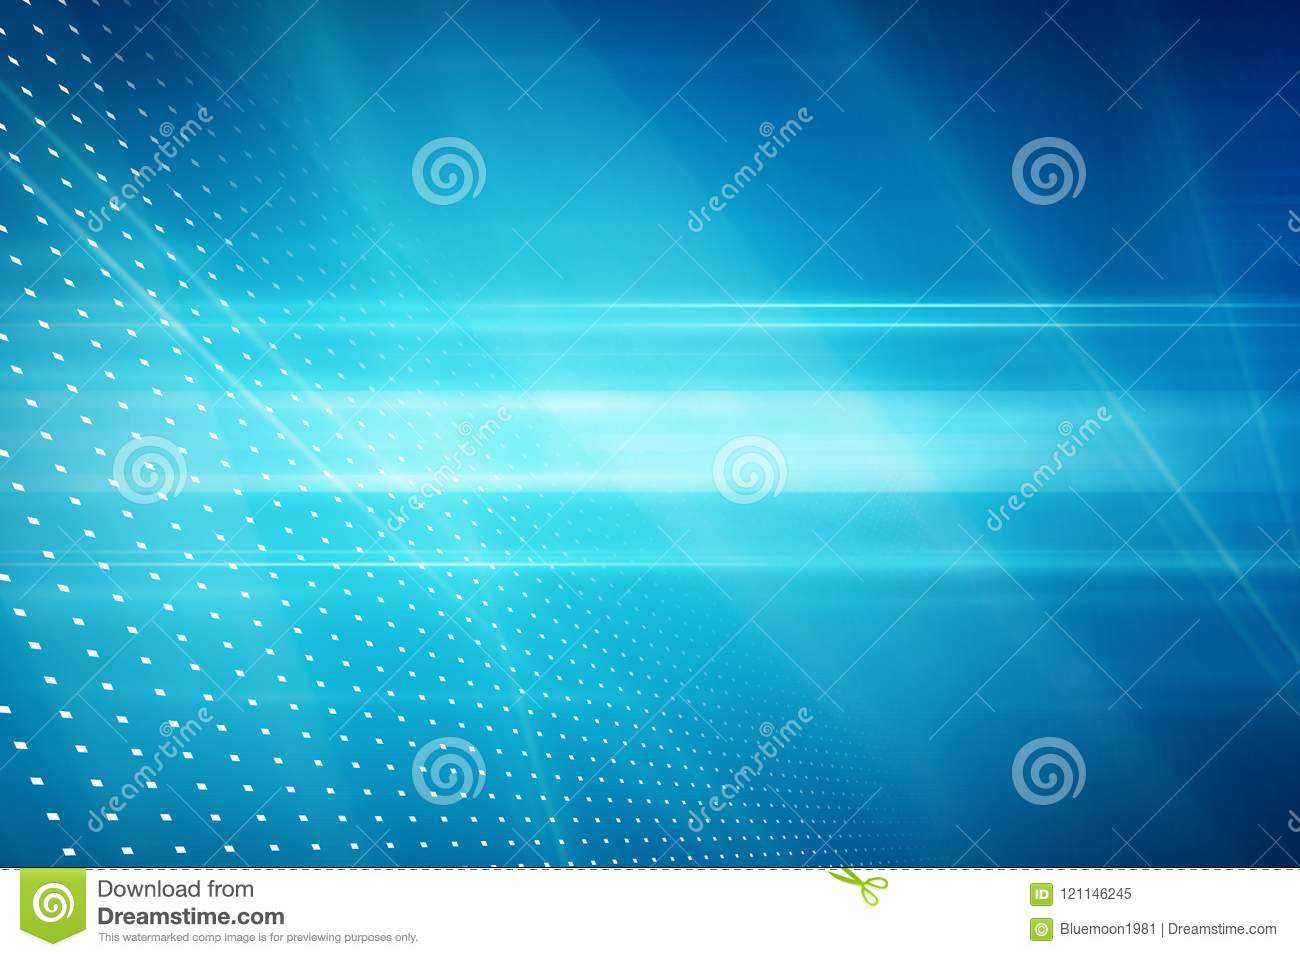 Graphical abstract technology background, light rays on blue back